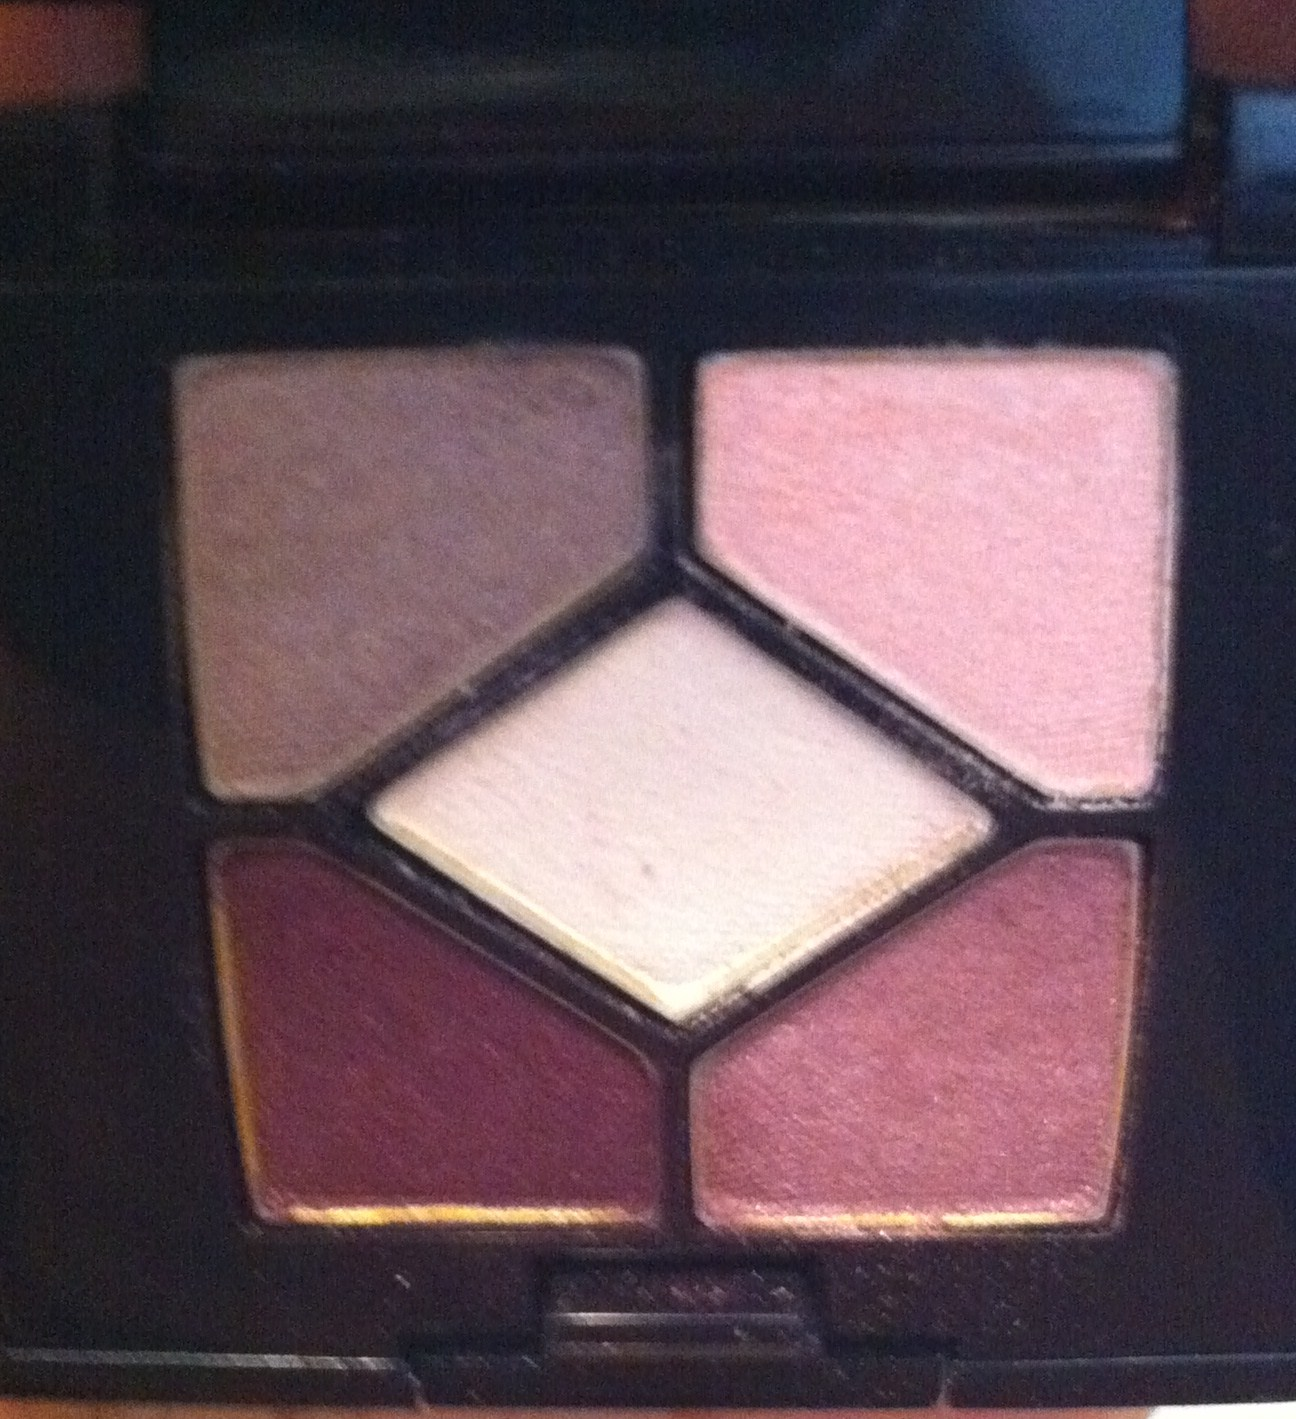 Review Dior 5 Couleurs Palette In Stylish Move The Makeup Train